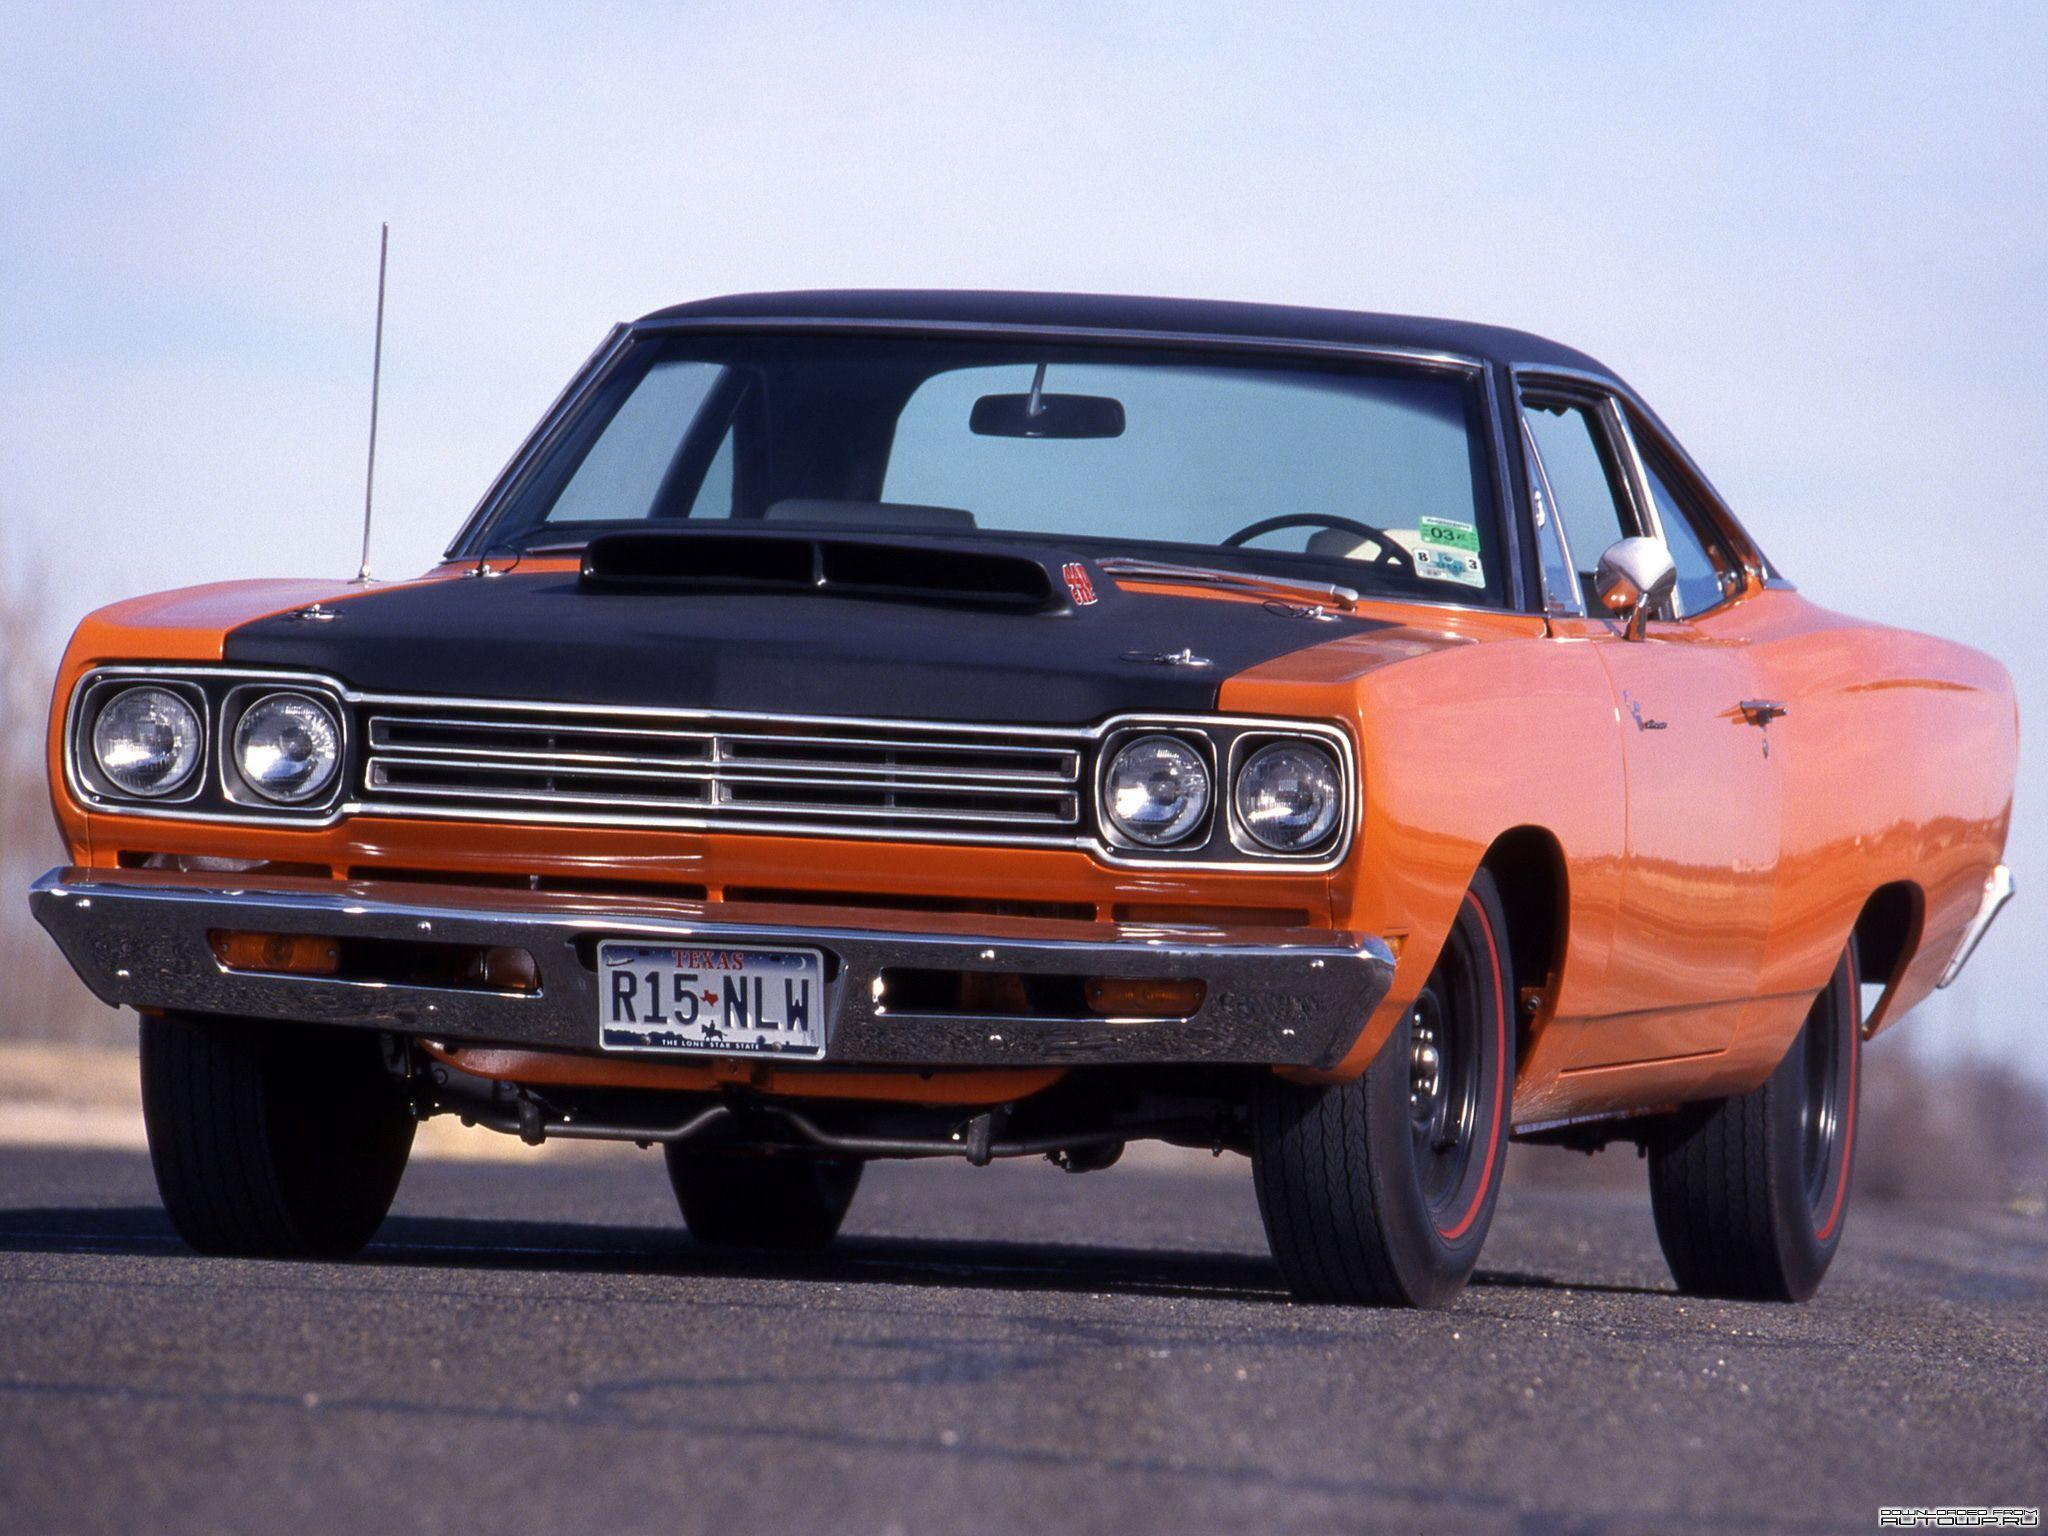 Plymouth Roadrunner Wallpaper